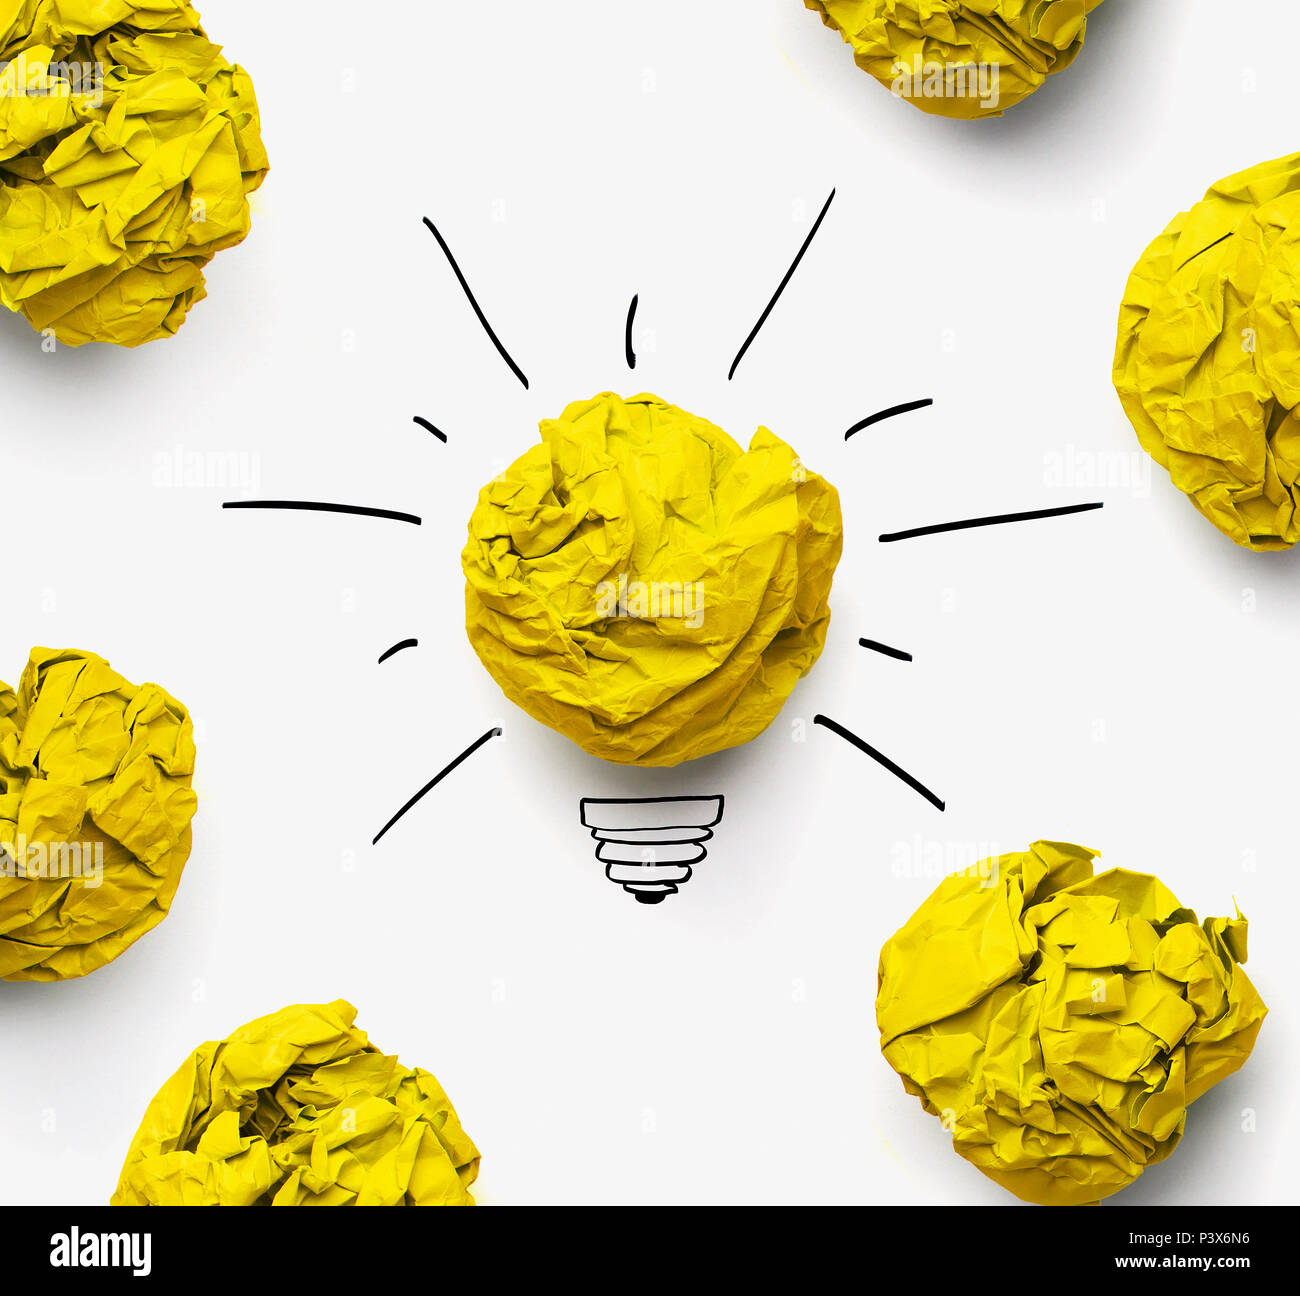 Great idea concept. Shining lightbulb between crumpled paper sheets with copy space - Stock Image